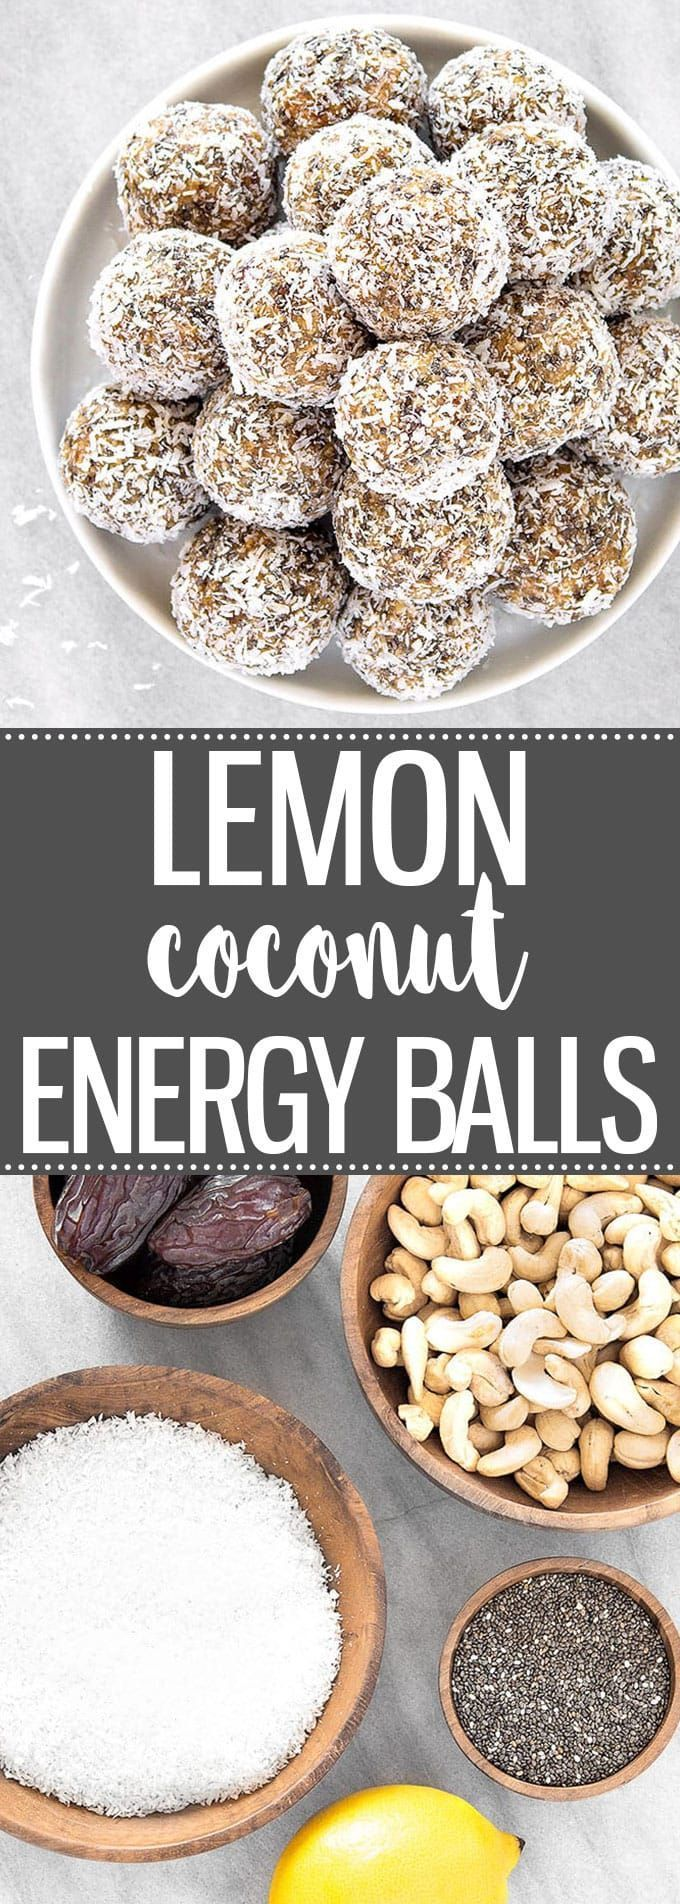 Healthy Lemon Coconut Energy Balls - No-bake snacks packed with cashew nuts, coconut, dates, chia seeds, lemon. Vegan, Paleo, Gluten Free